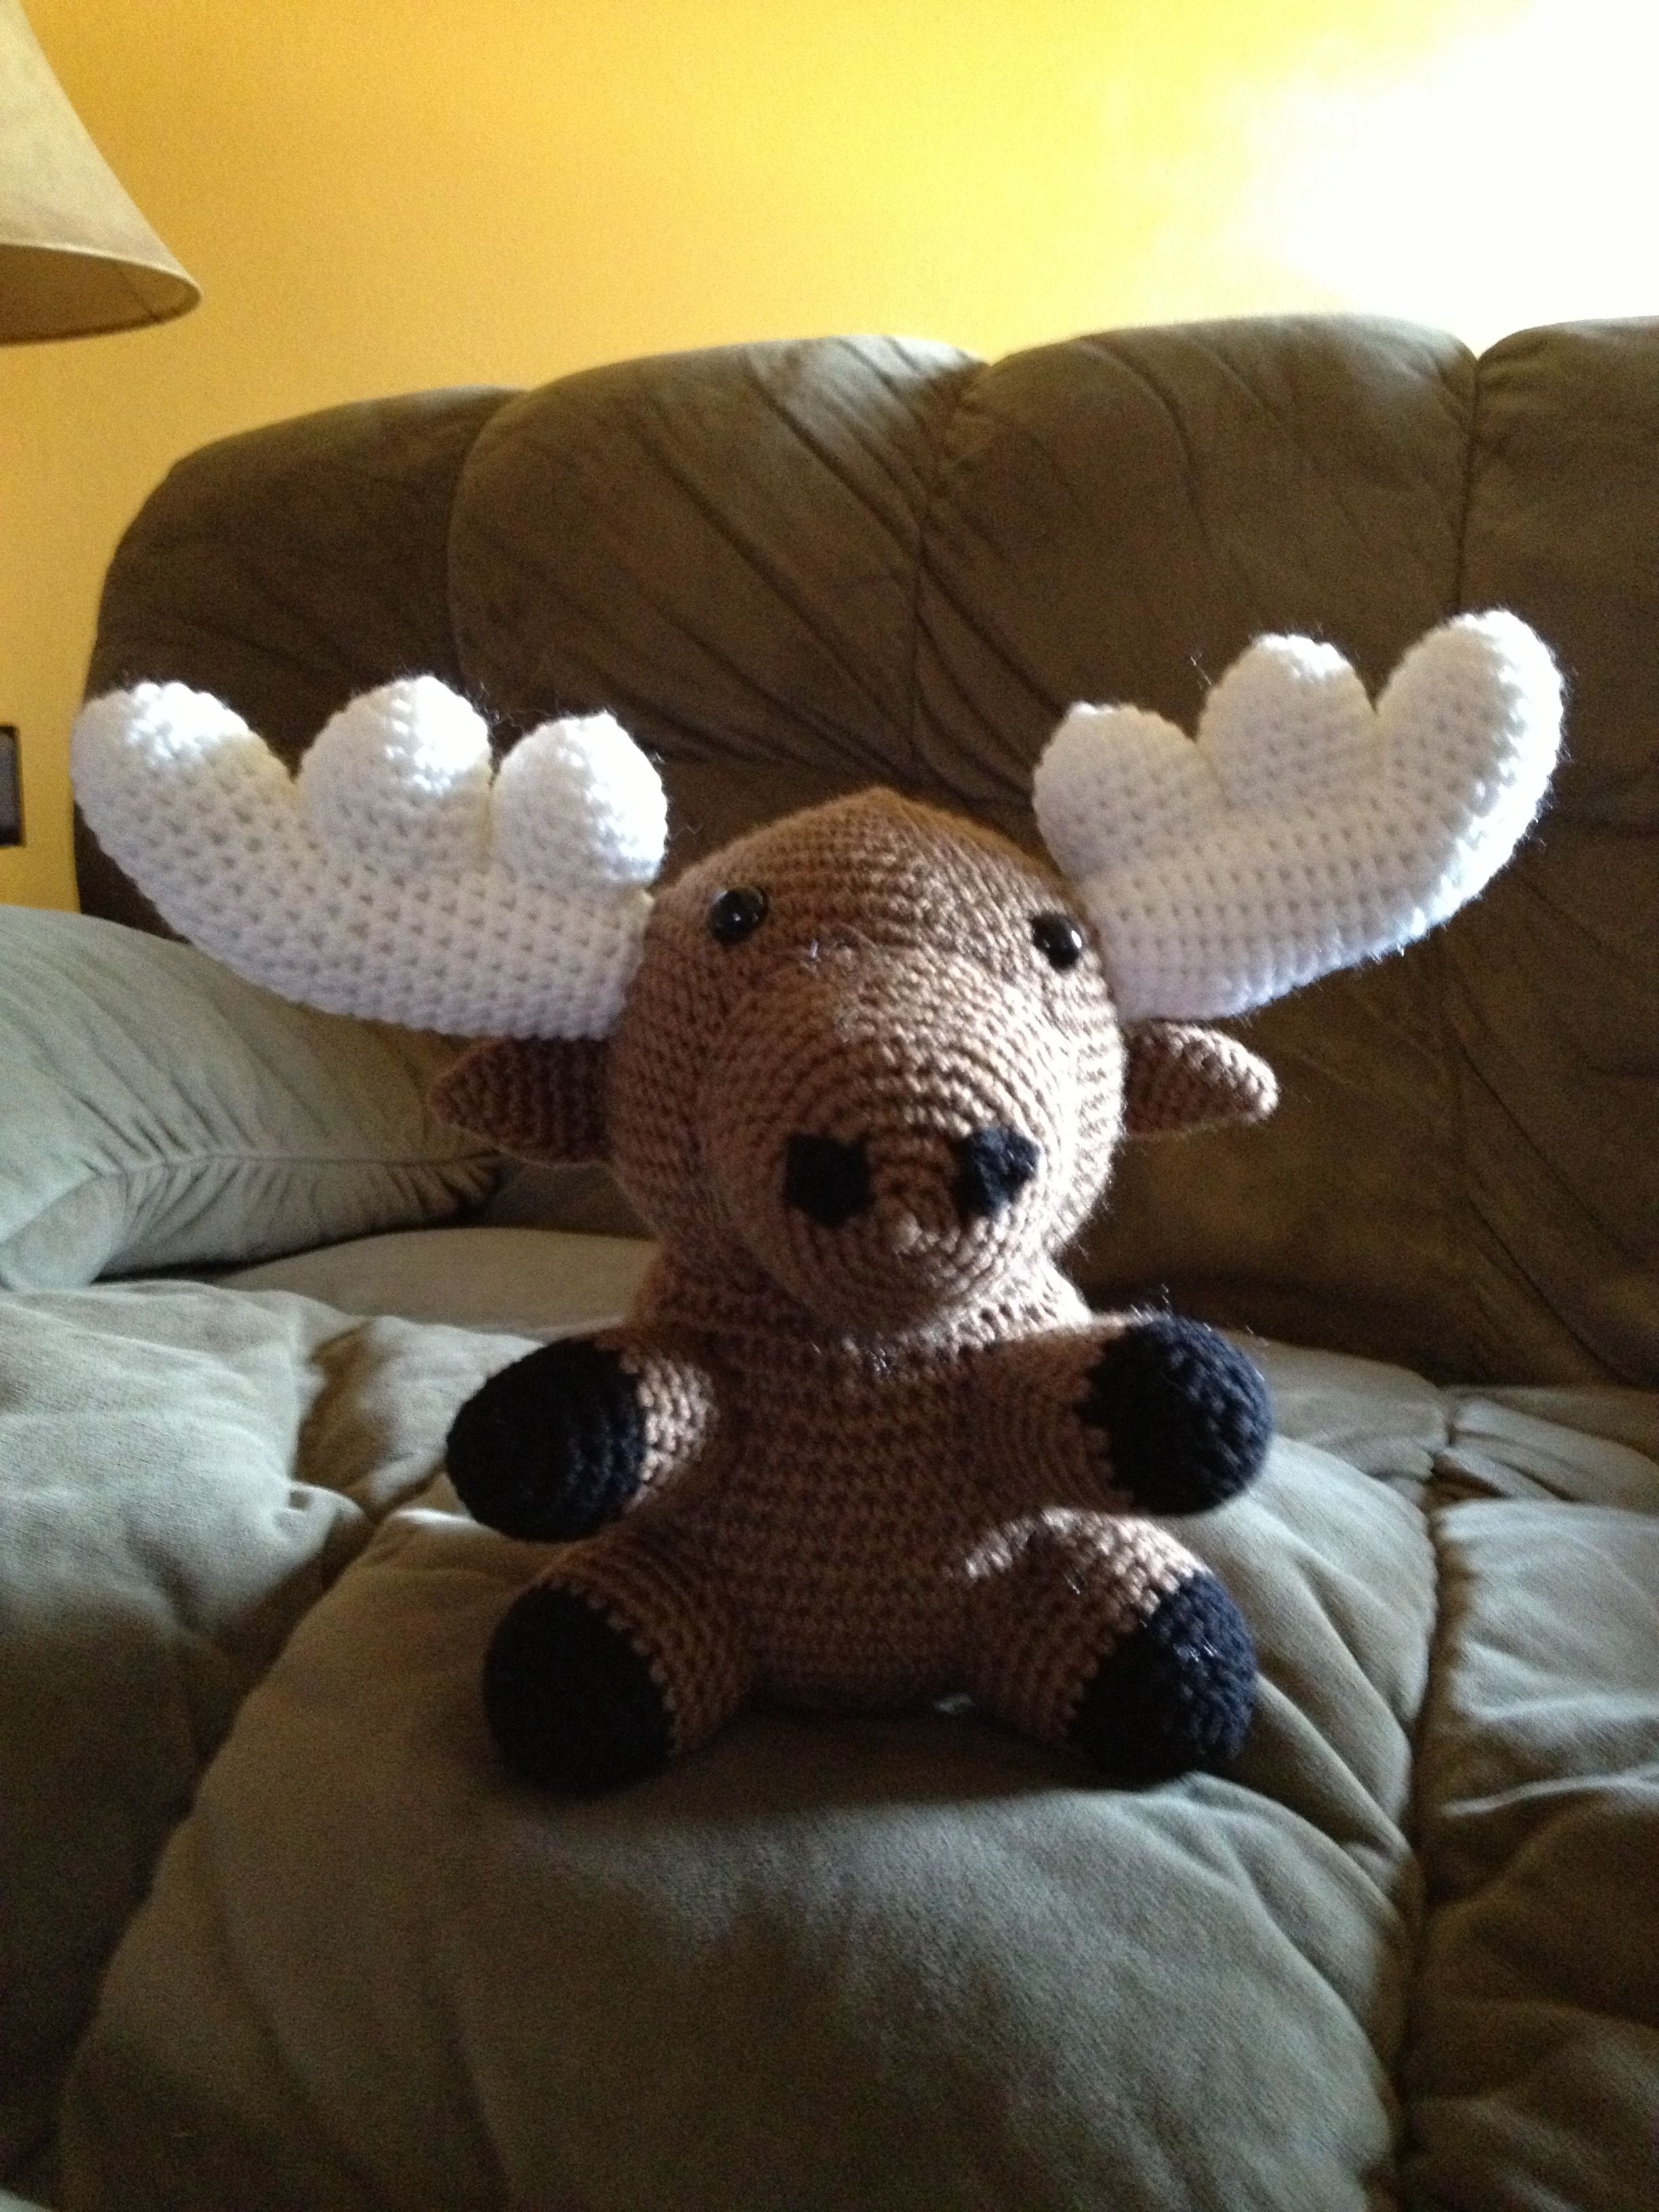 Crocheted Moose Crocheted From Crocheted Softies By Stacey Trock